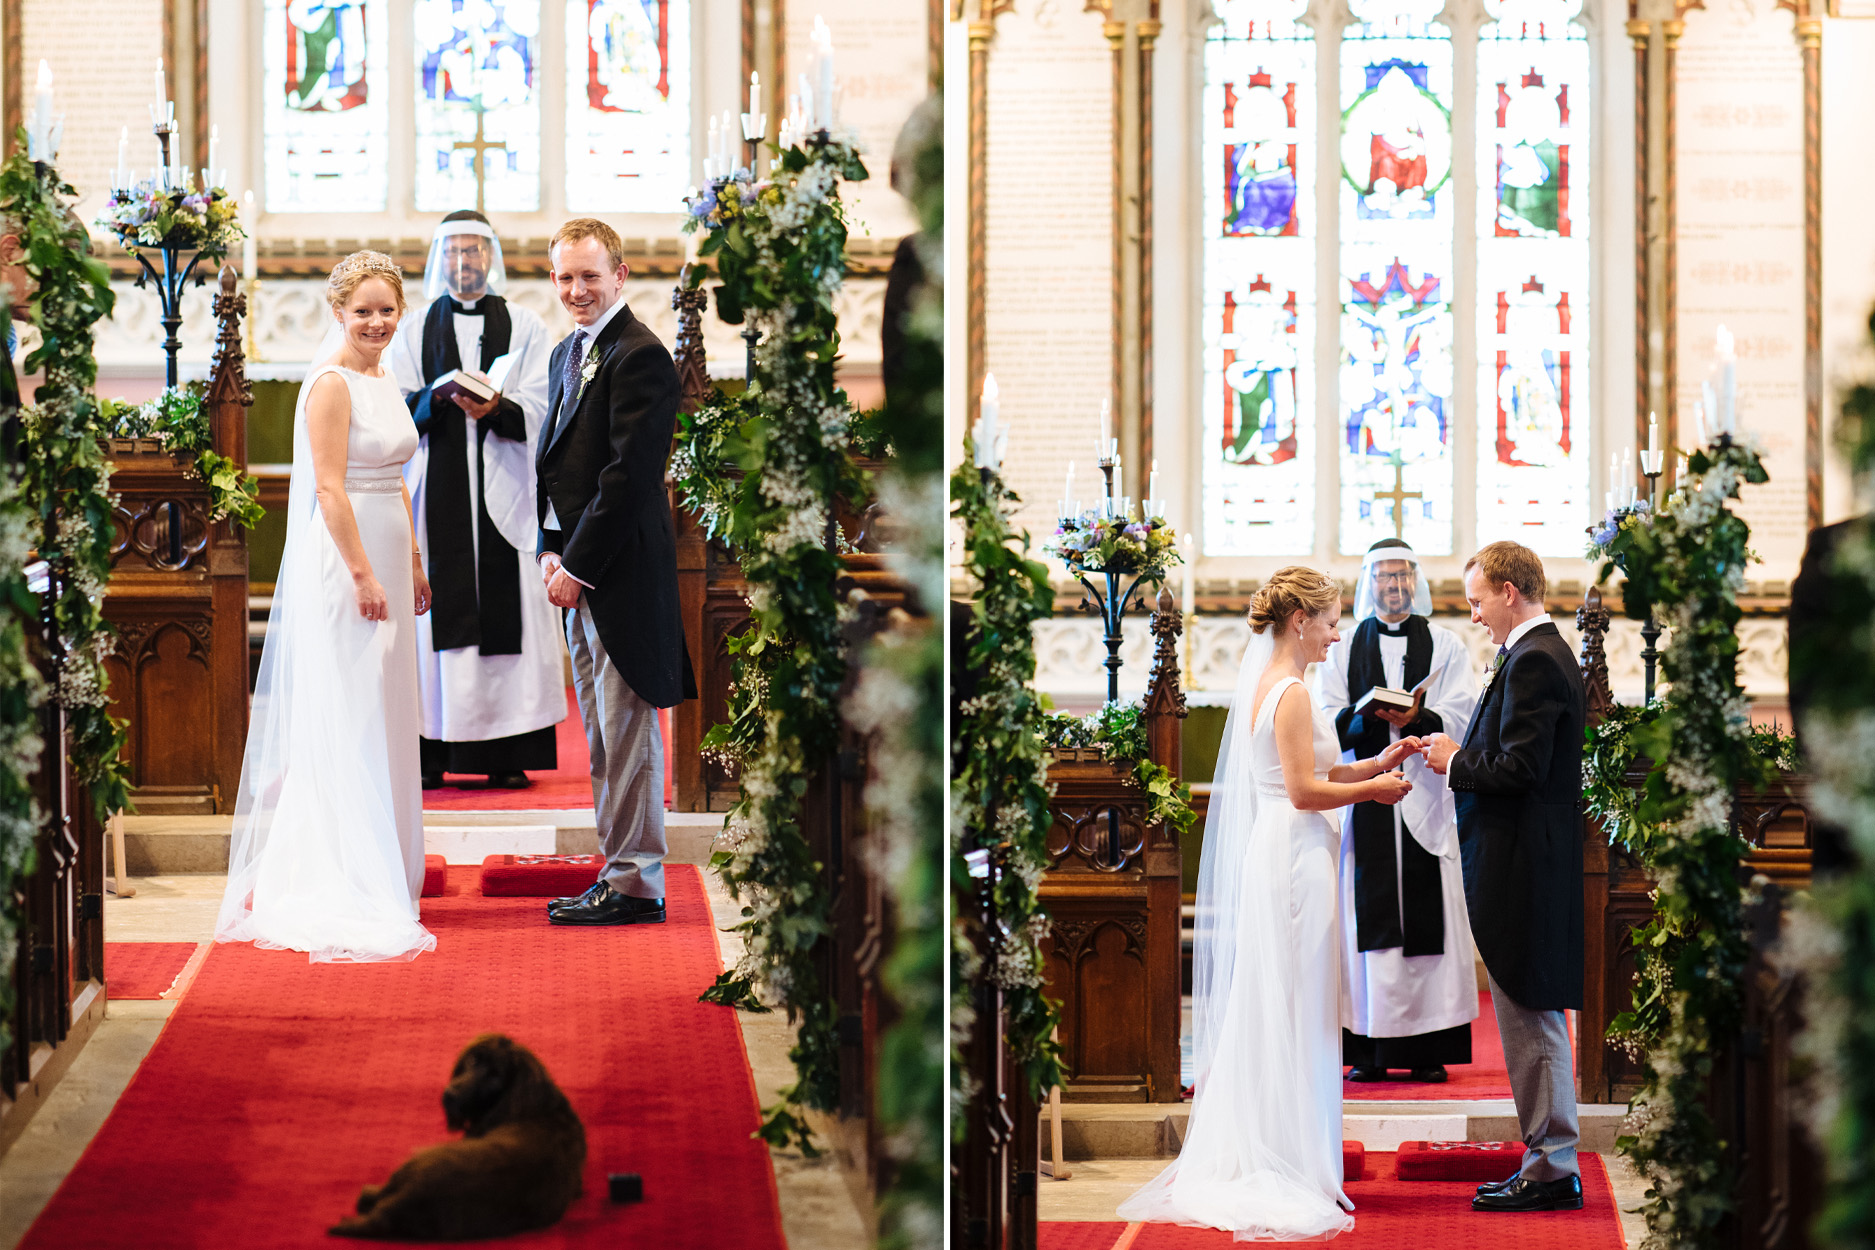 bride and groom exchanging vows in the church with dog as ring bearer